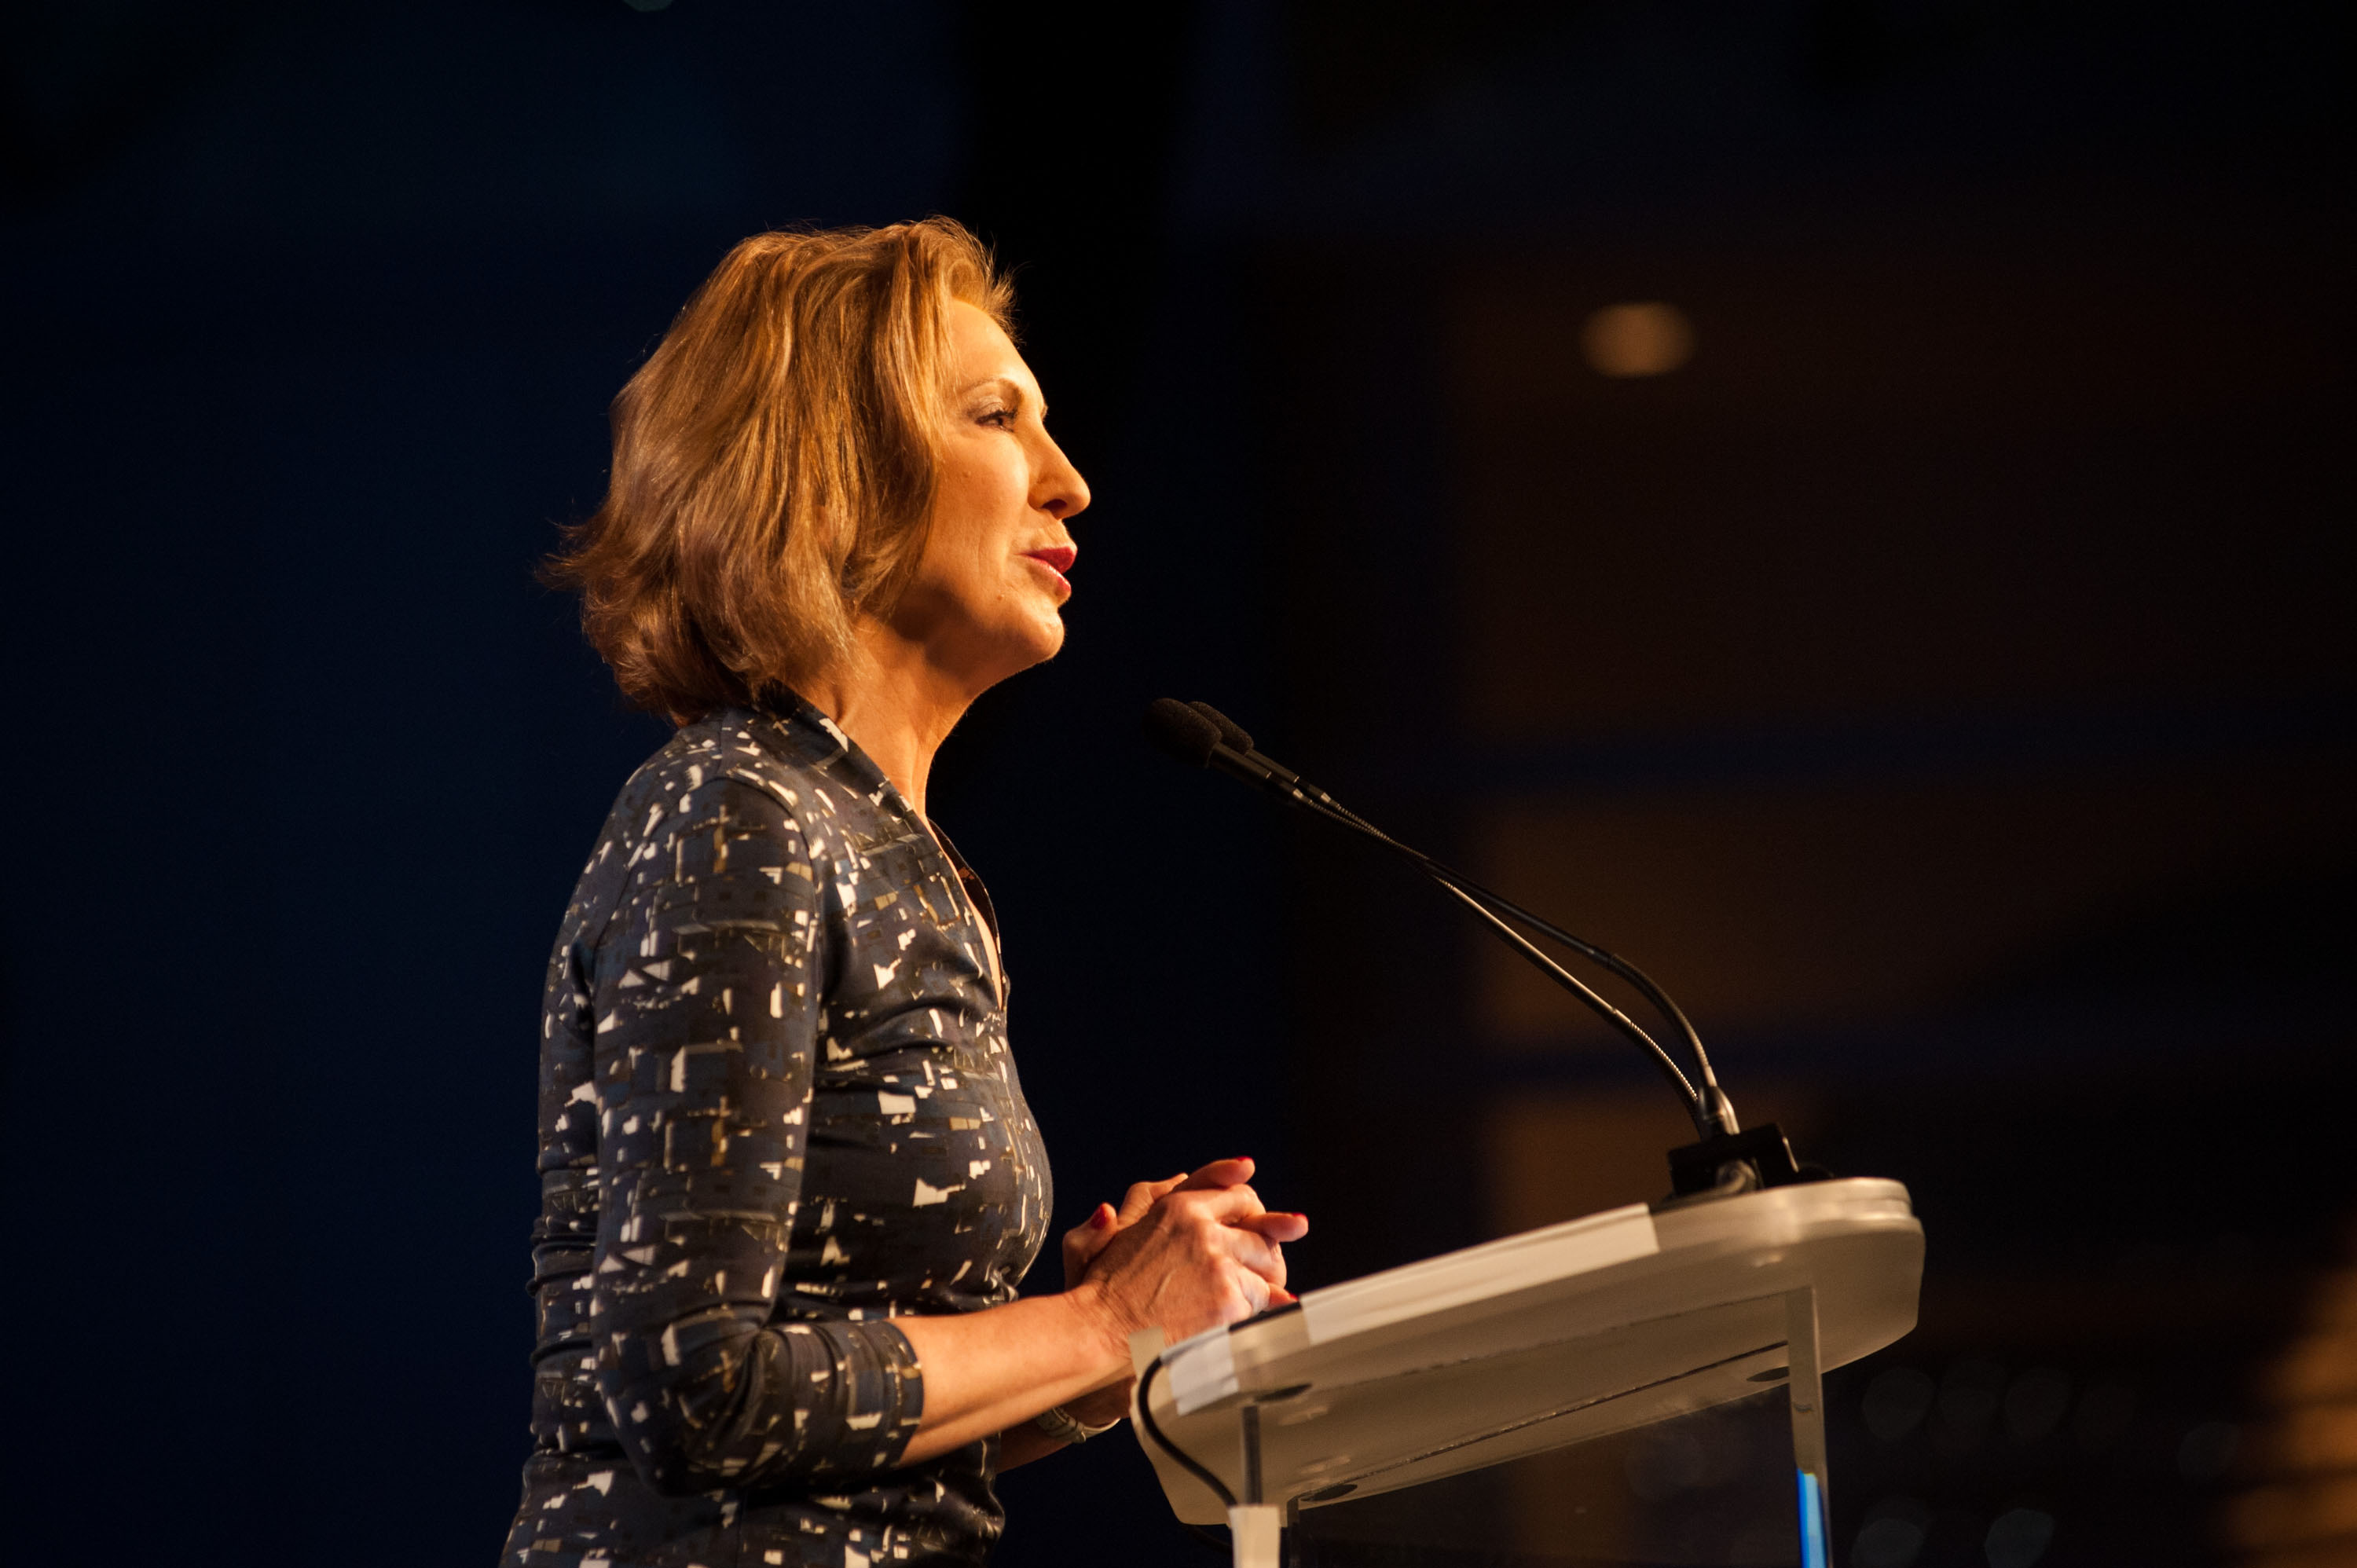 Carly Fiorina speaks during the Western Conservative Summit at the Colorado Convention Center on June 27, 2015 in Denver, Colorado.